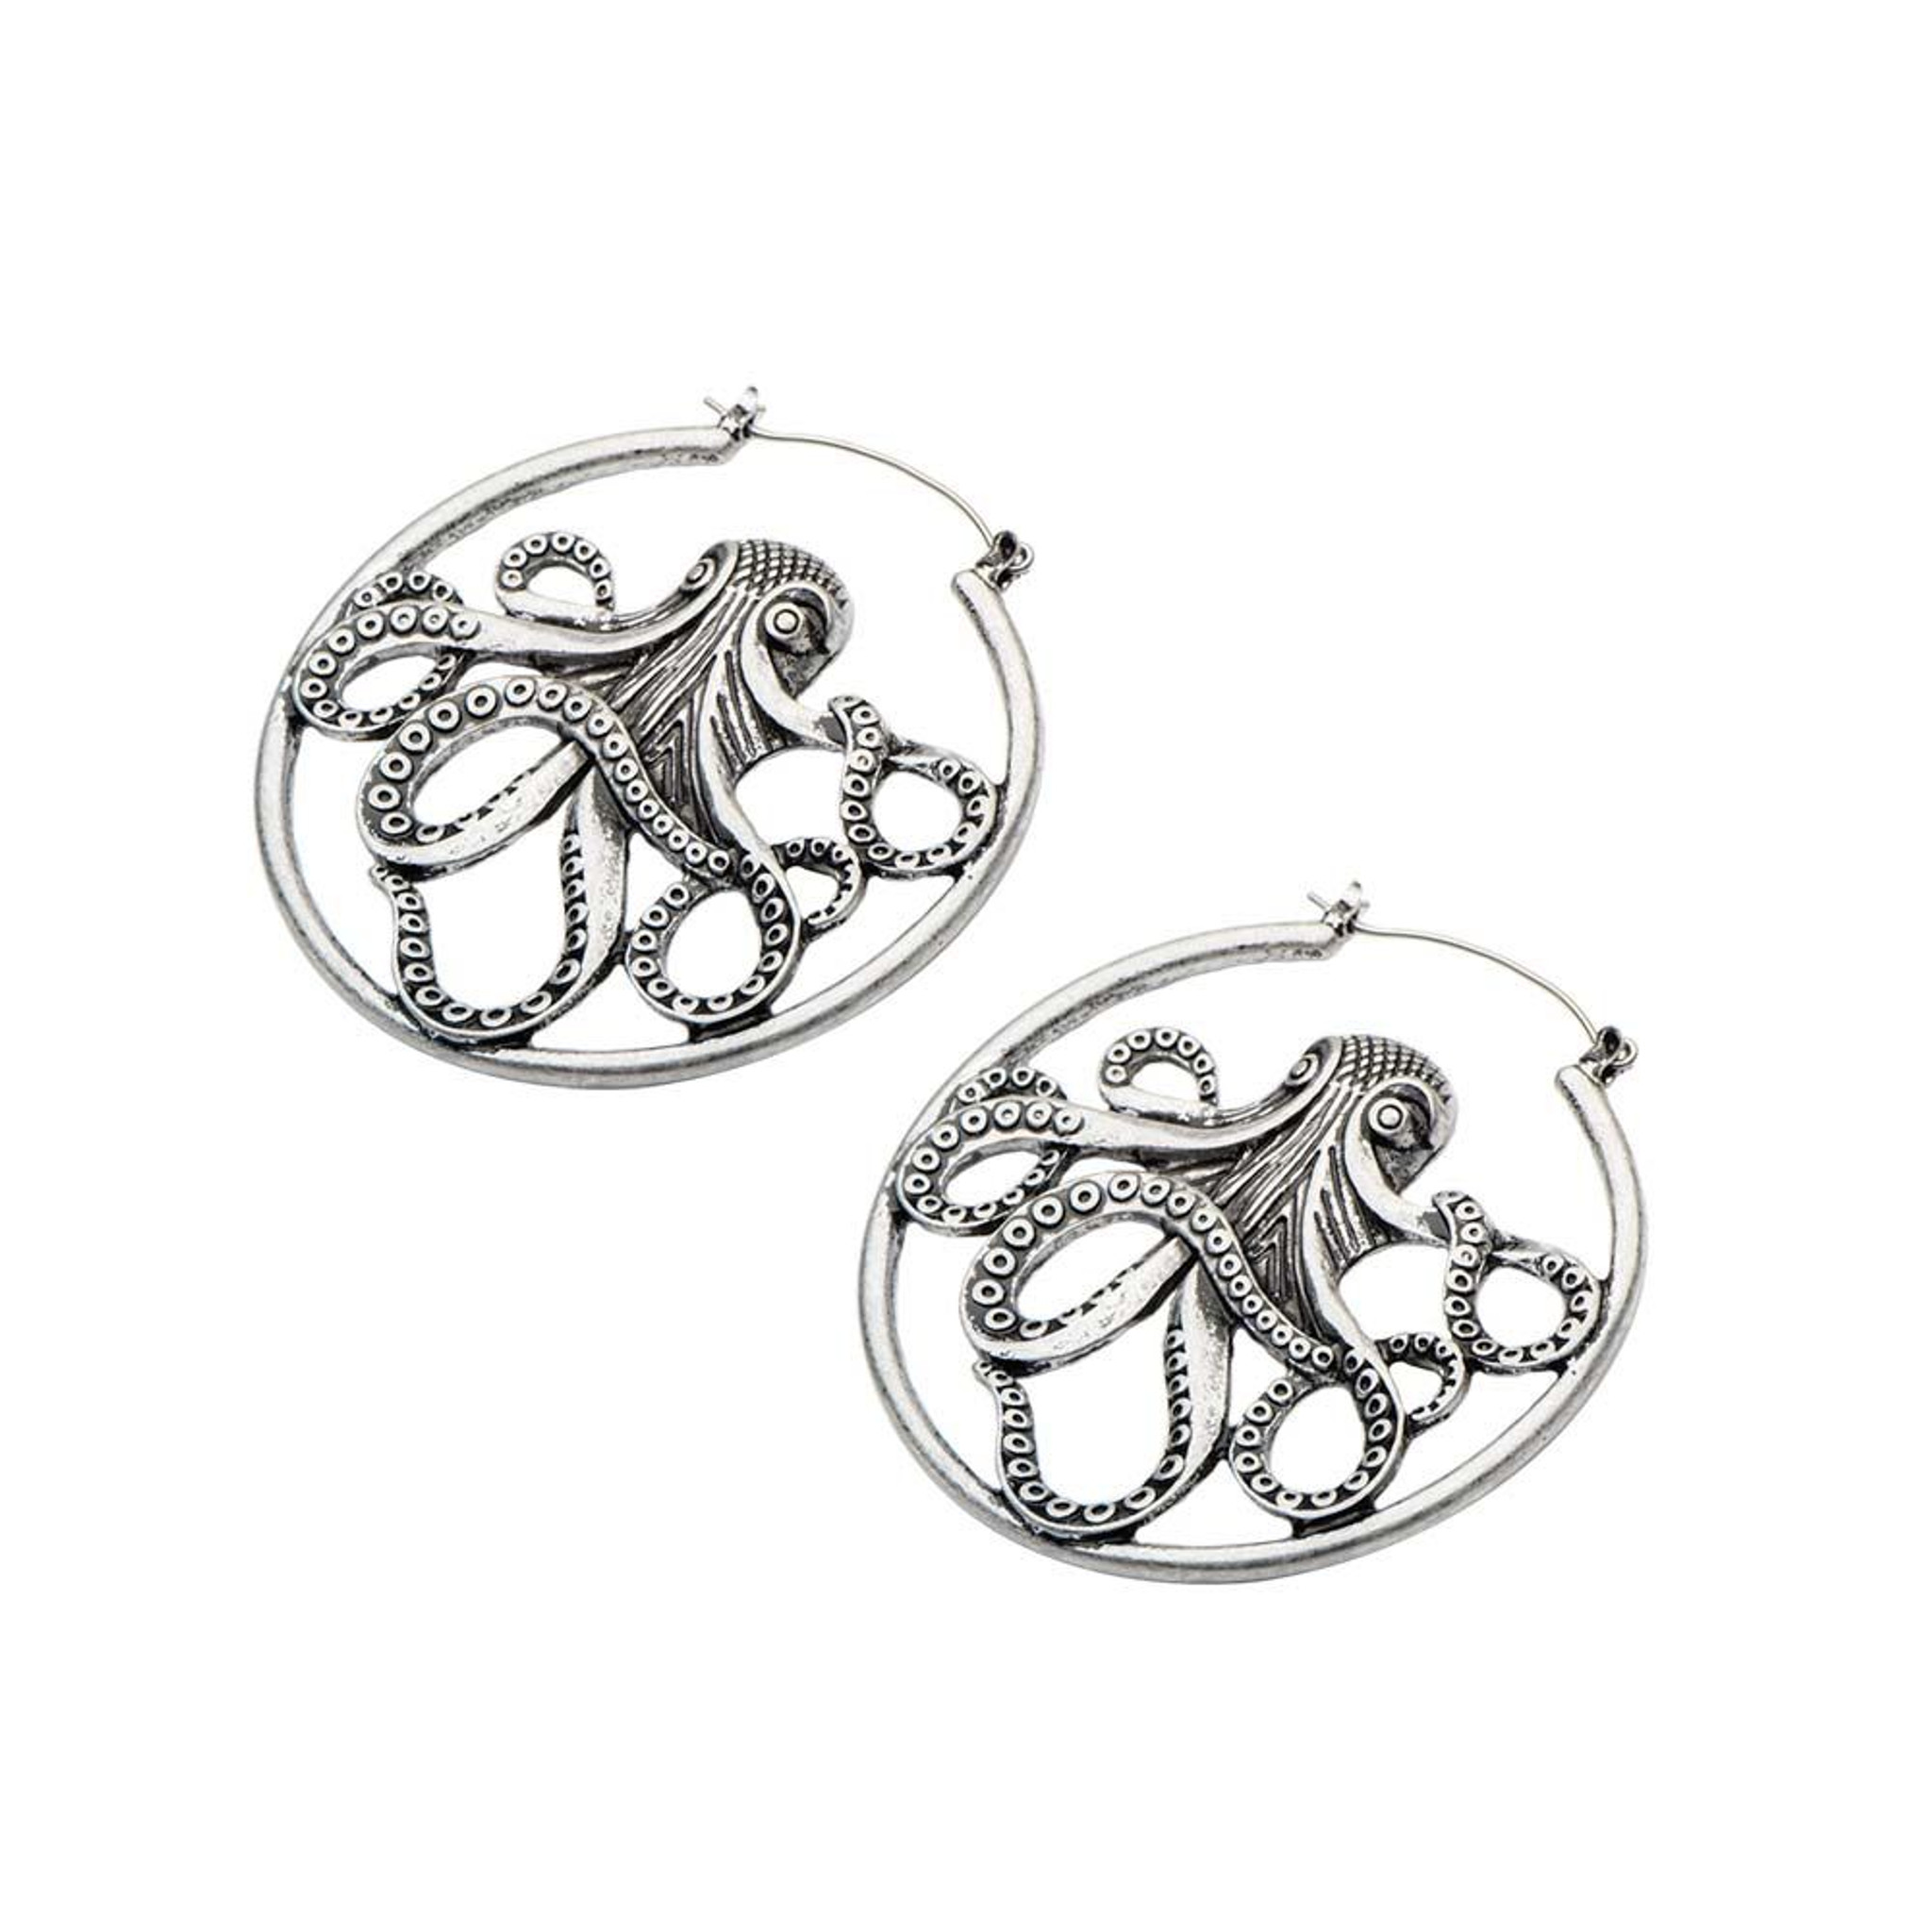 Octopus earrings - plug hoops